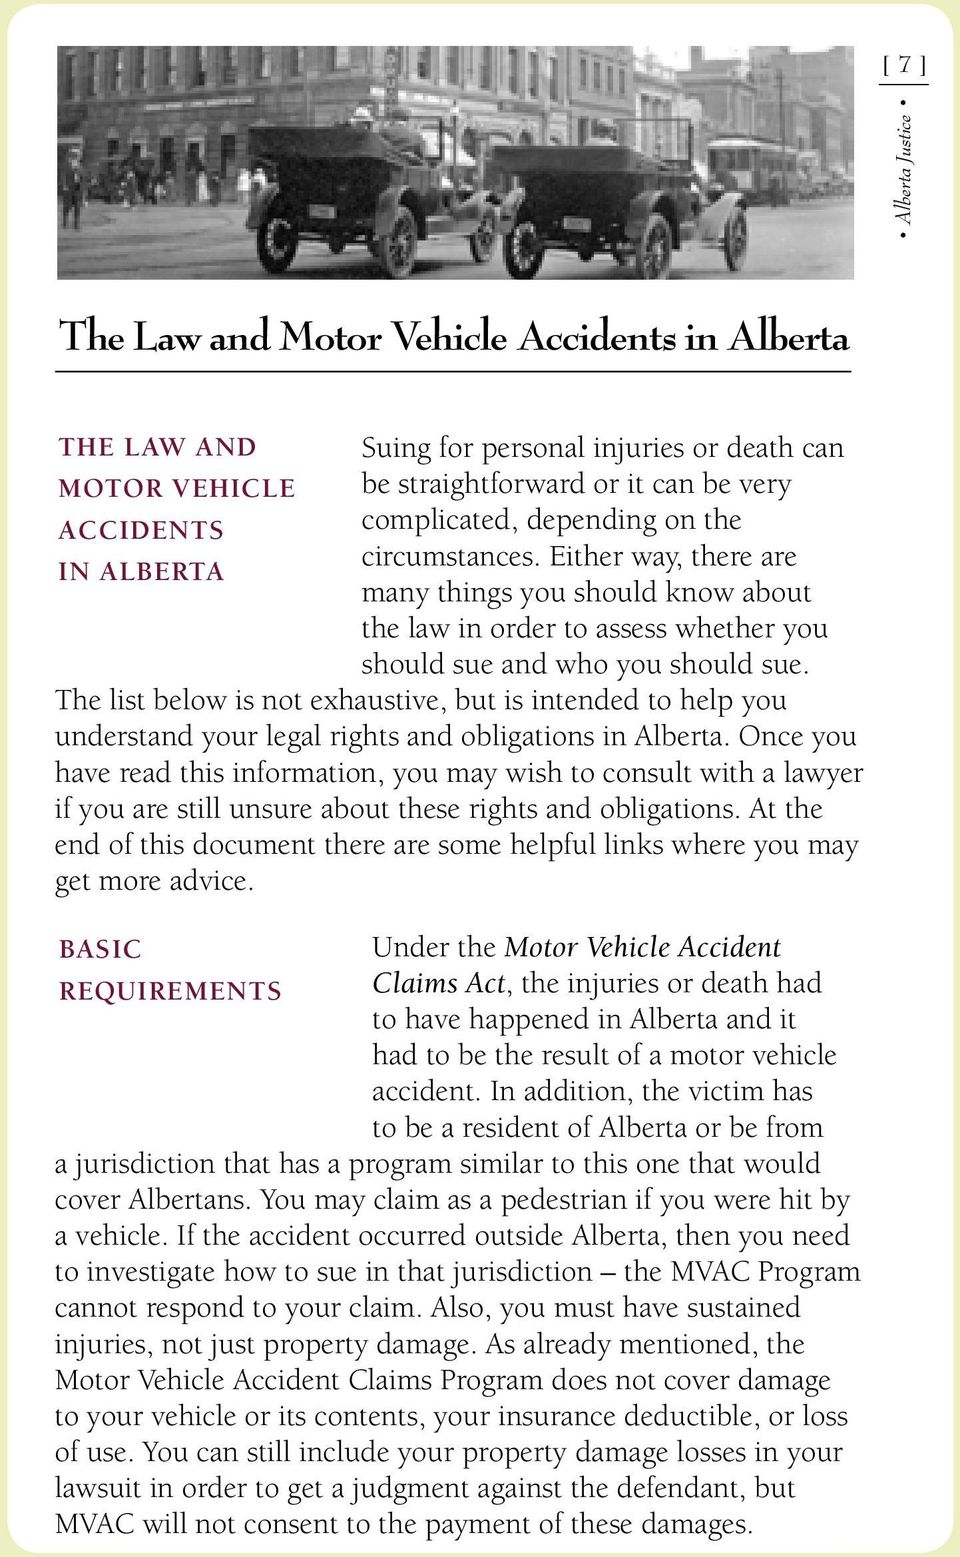 The list below is not exhaustive, but is intended to help you understand your legal rights and obligations in Alberta.